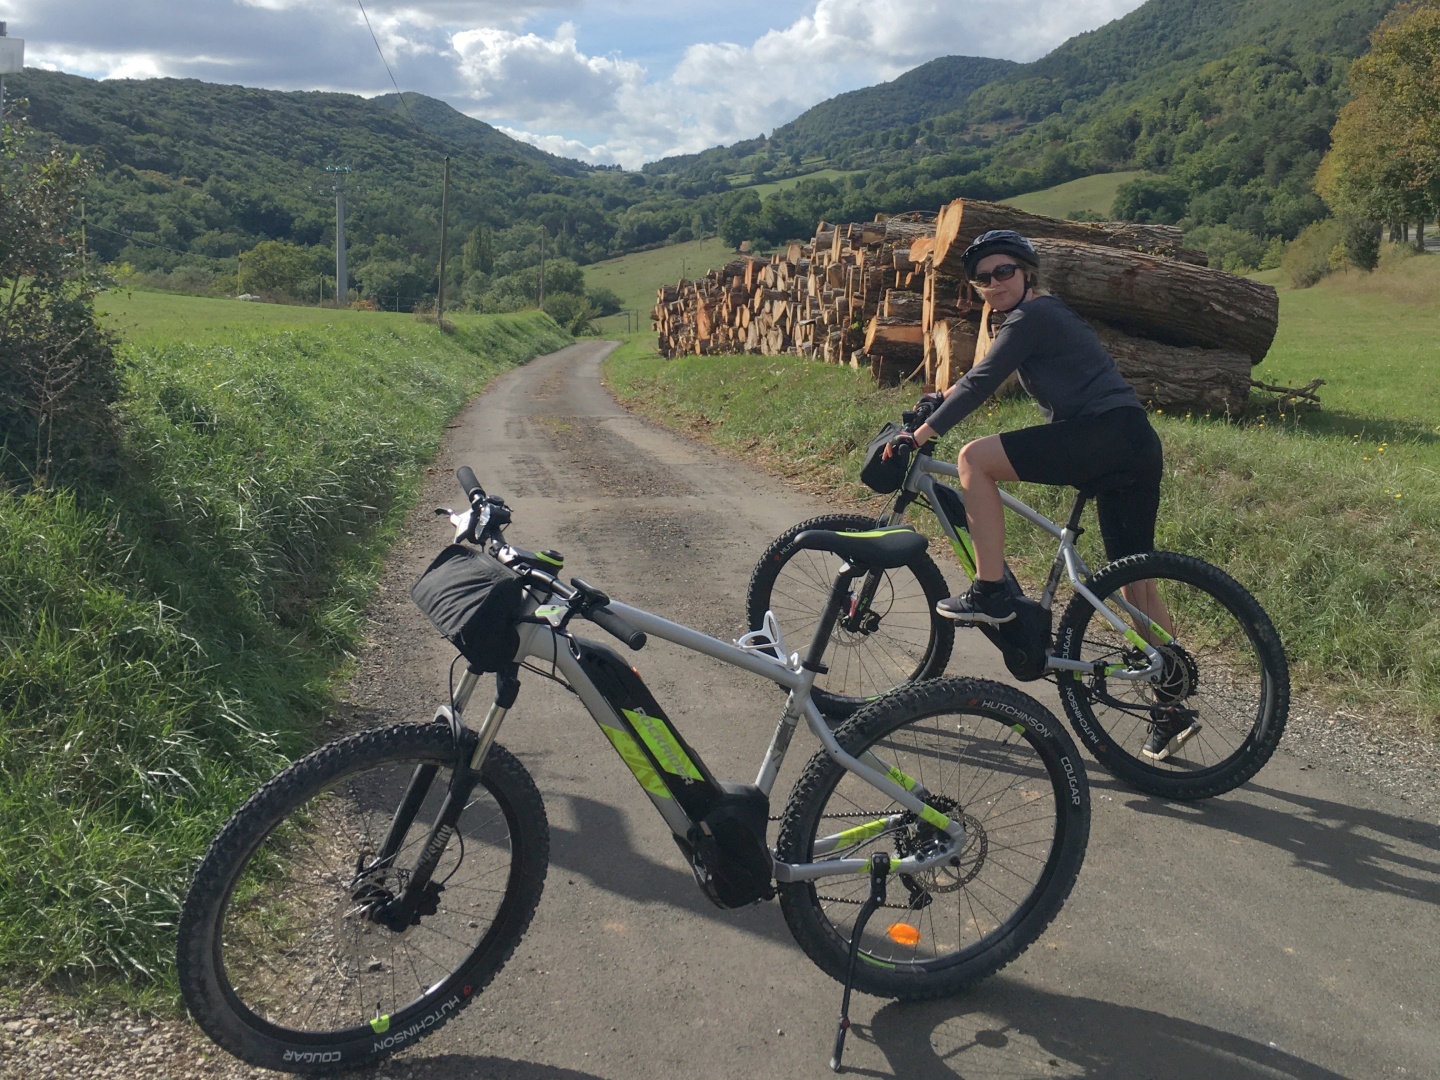 Couple ebiking at the start of a forest valley in Pyrenees foothills